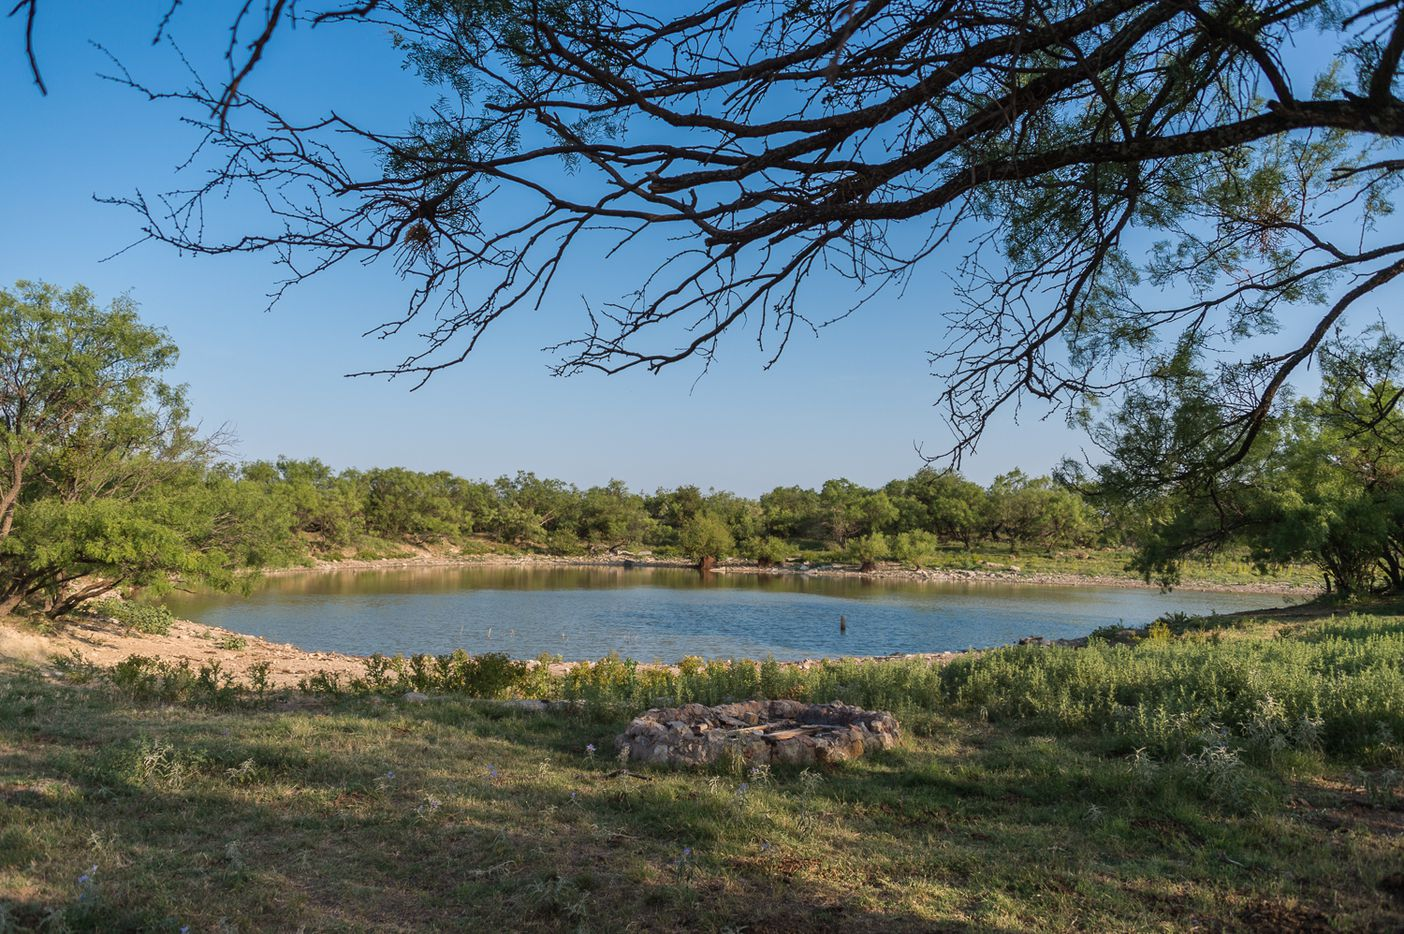 The Comanche Crest Ranch has more than two dozen lakes and stock ponds.